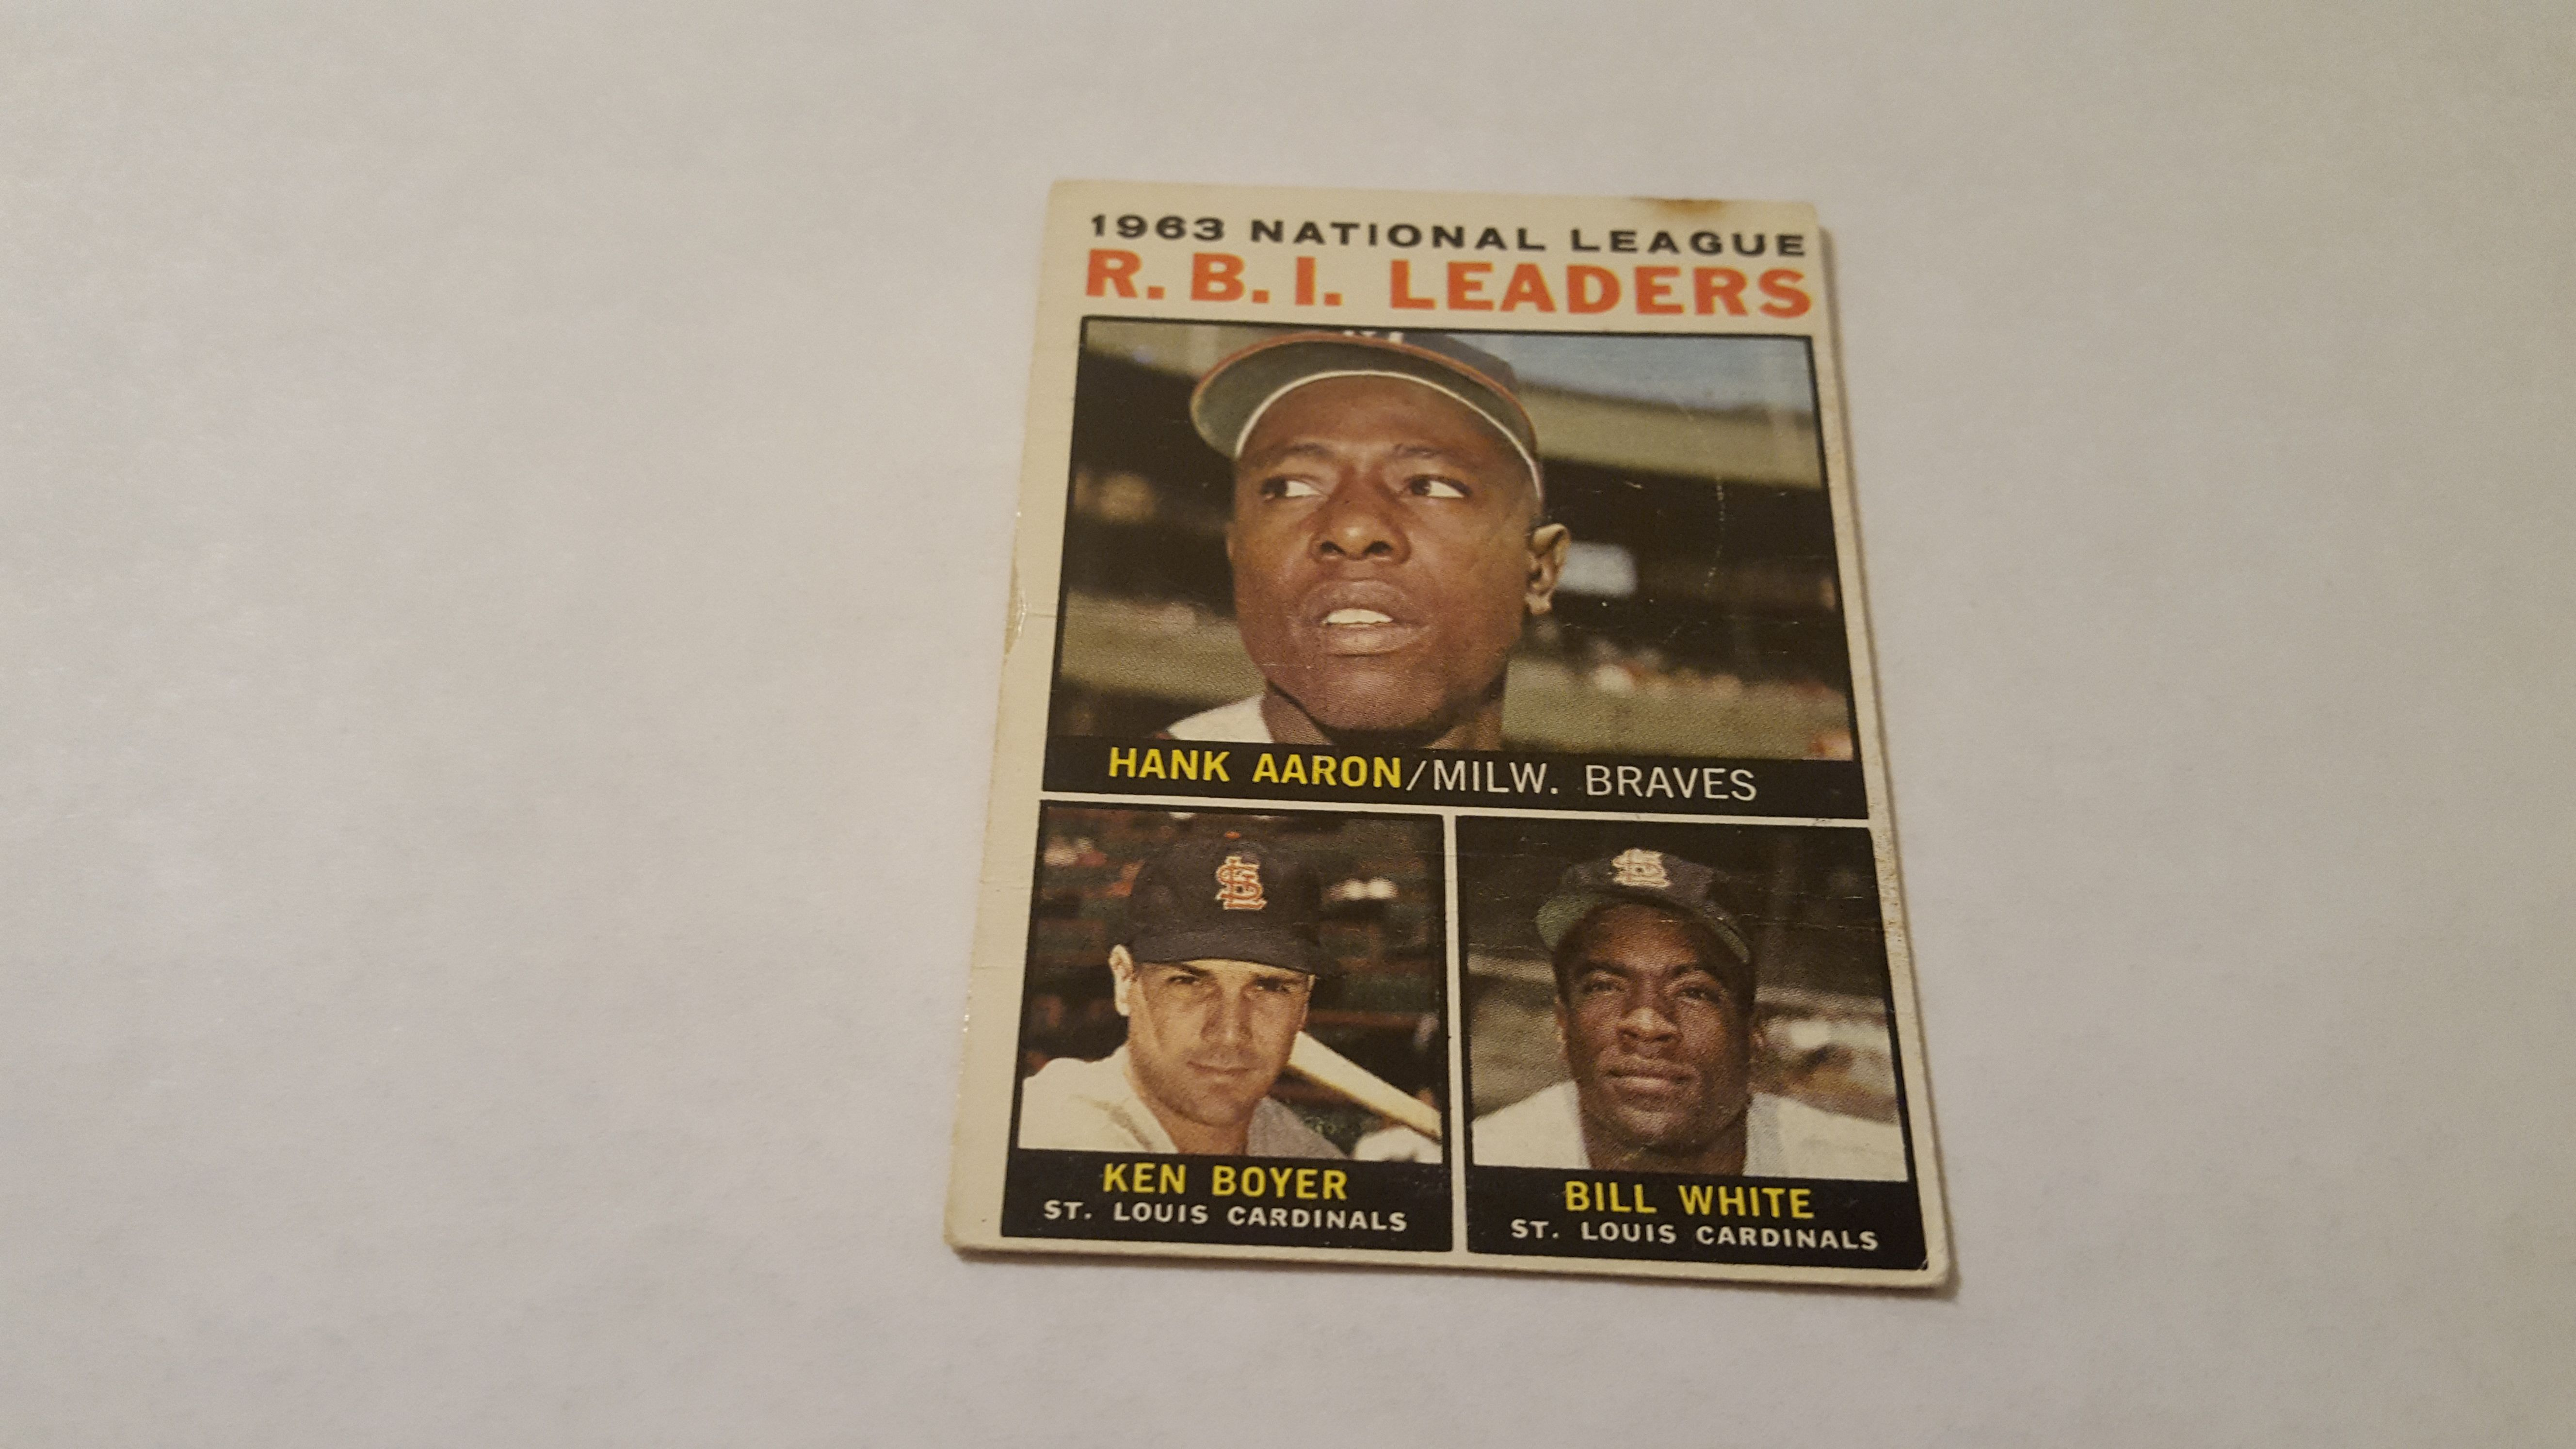 Card number 11 from the 1964 topps baseball card set